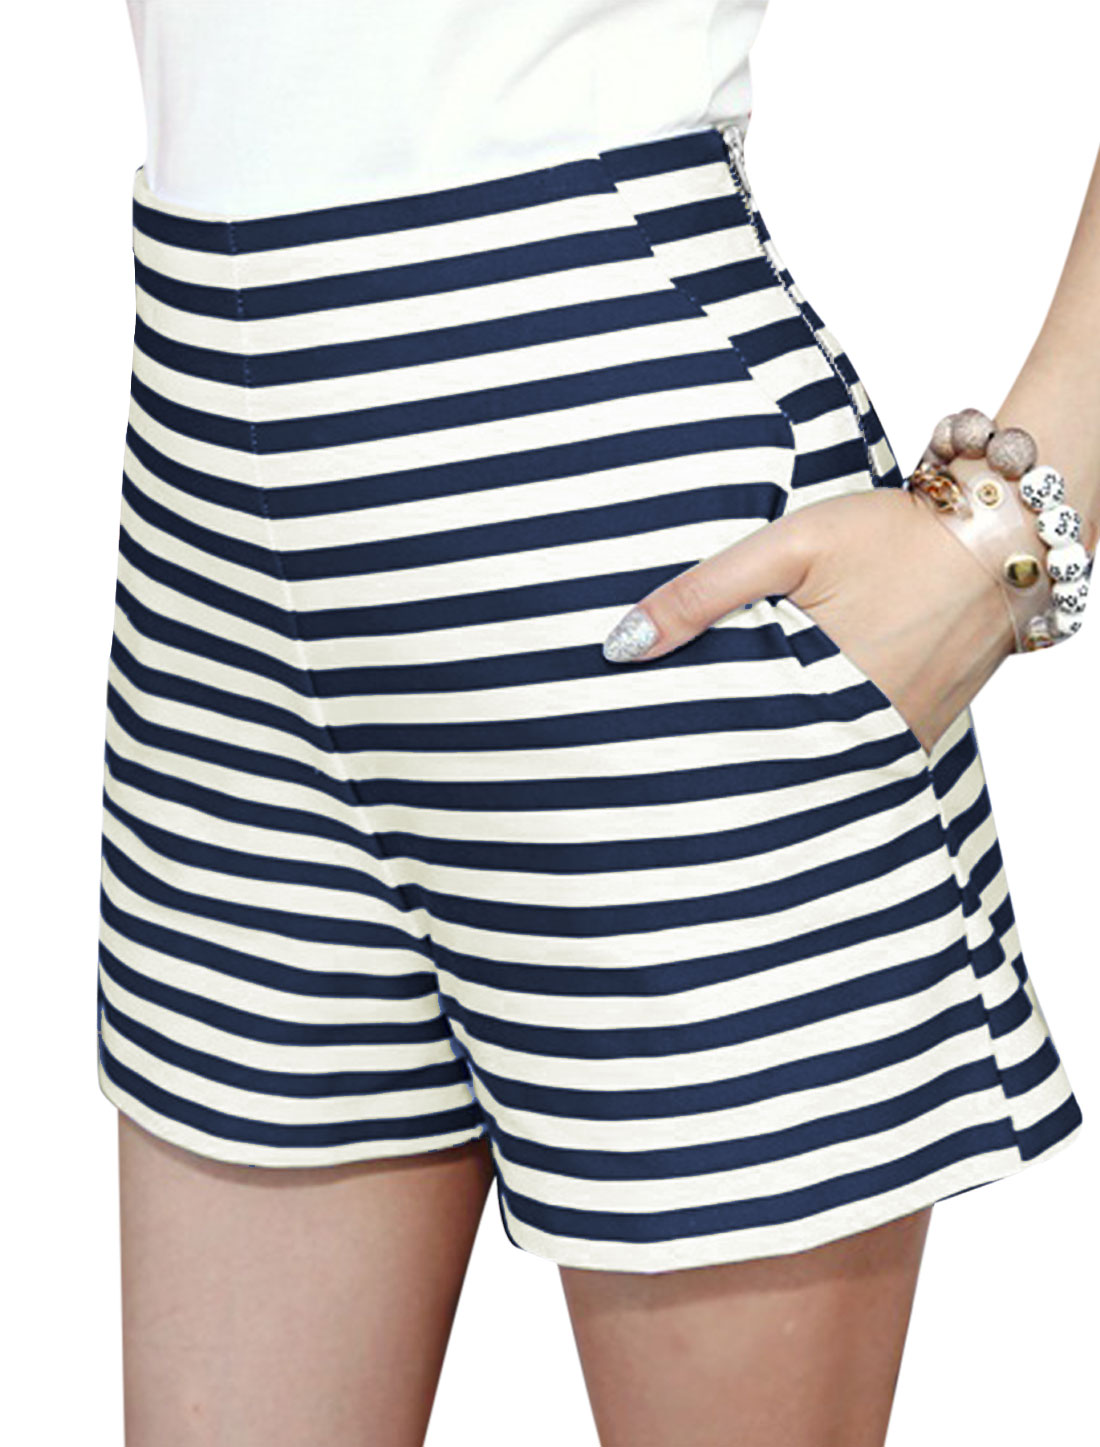 Lady High Waist Zip Side Stripes Slim Fit Casual Shorts White Navy Blue XS